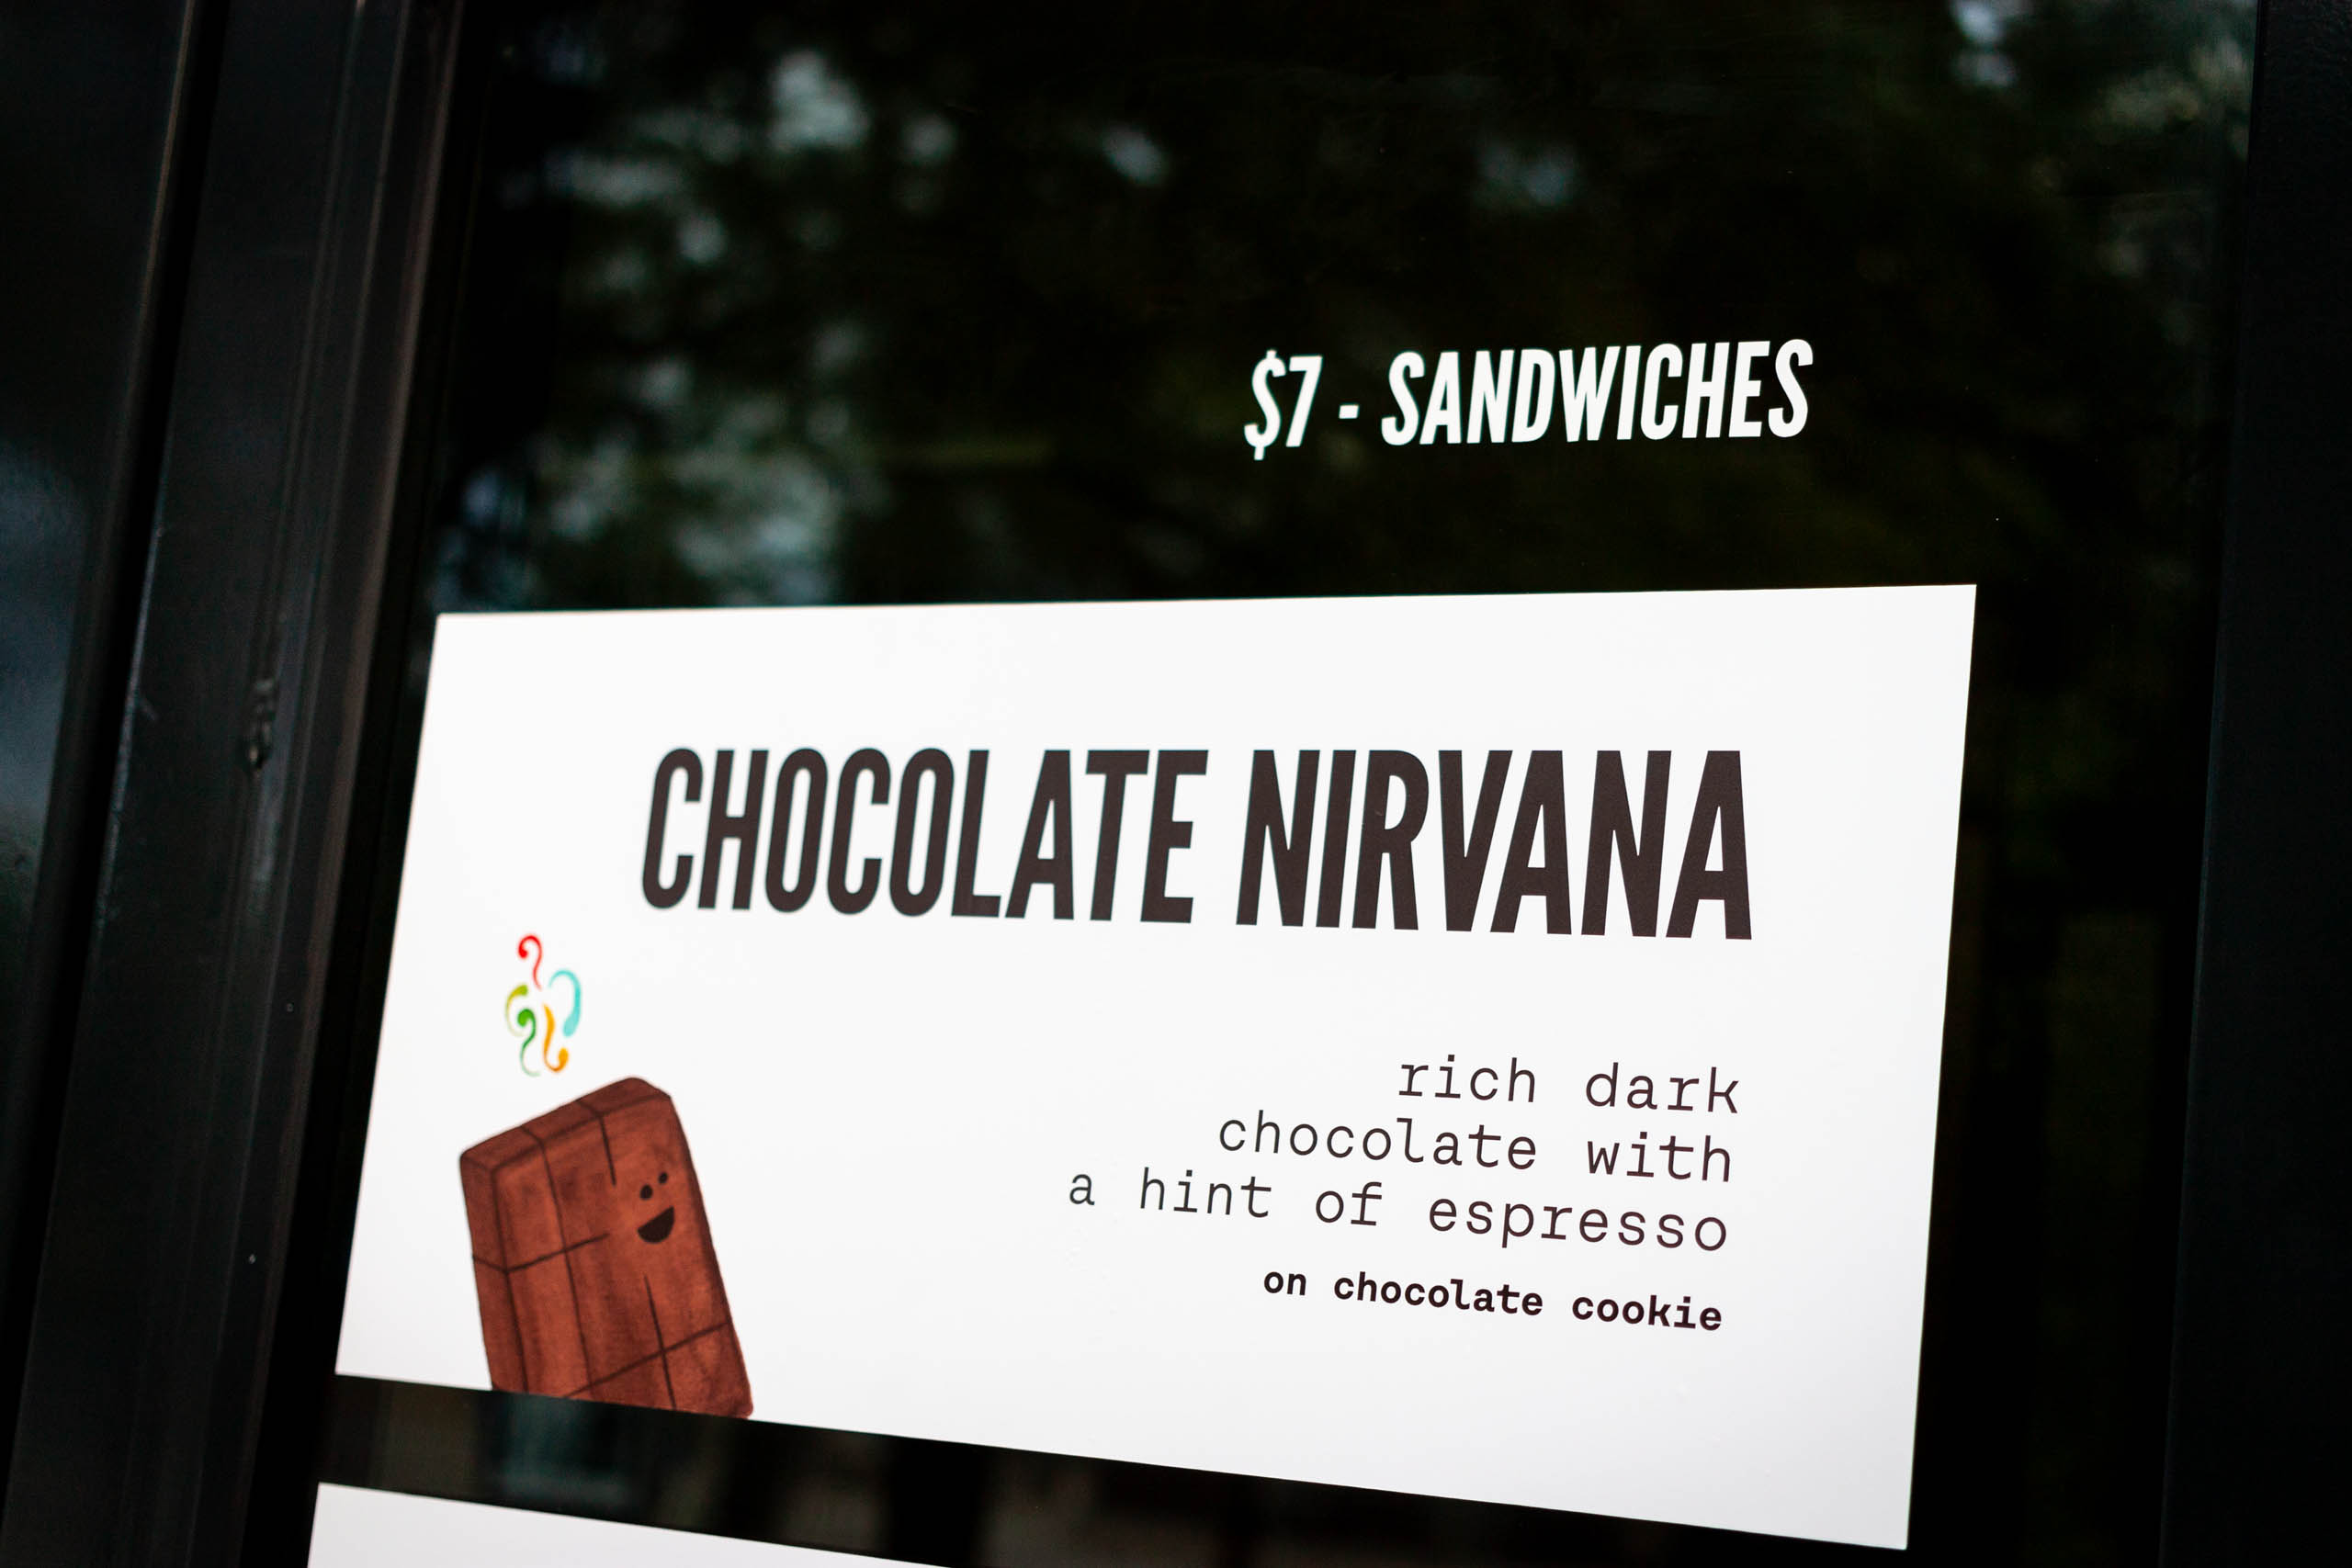 Close up of window display for Say Hello Chocolate Nirvana Ice Cream sandwich with product description and price — by Dima Yagnyuk.